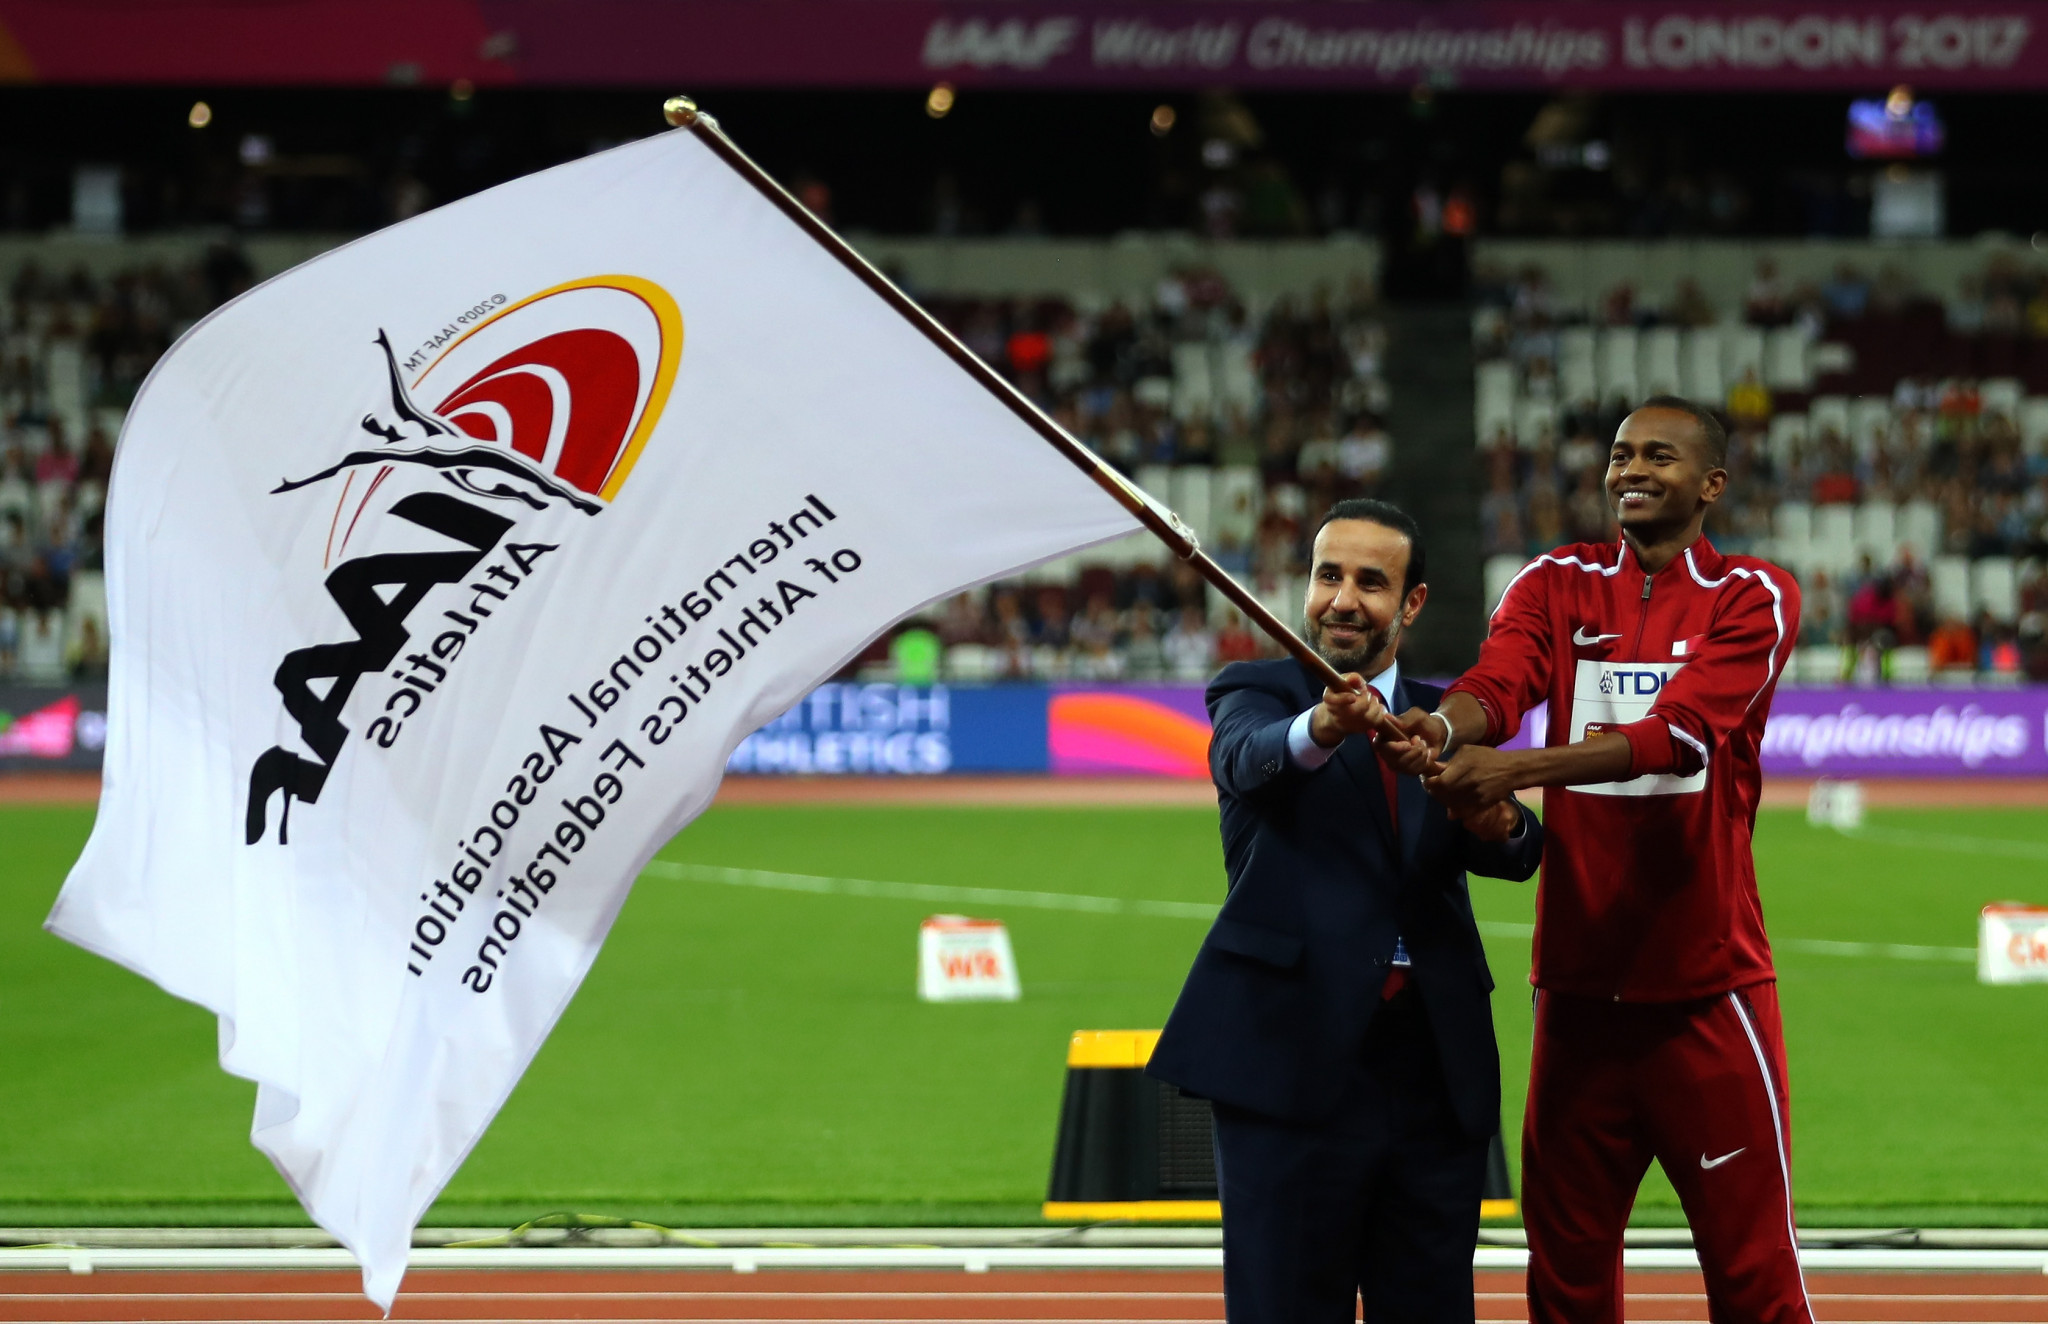 Doha beat Eugene to the 2019 World Championships but the American city were named as 2021 hosts five months later ©Getty Images